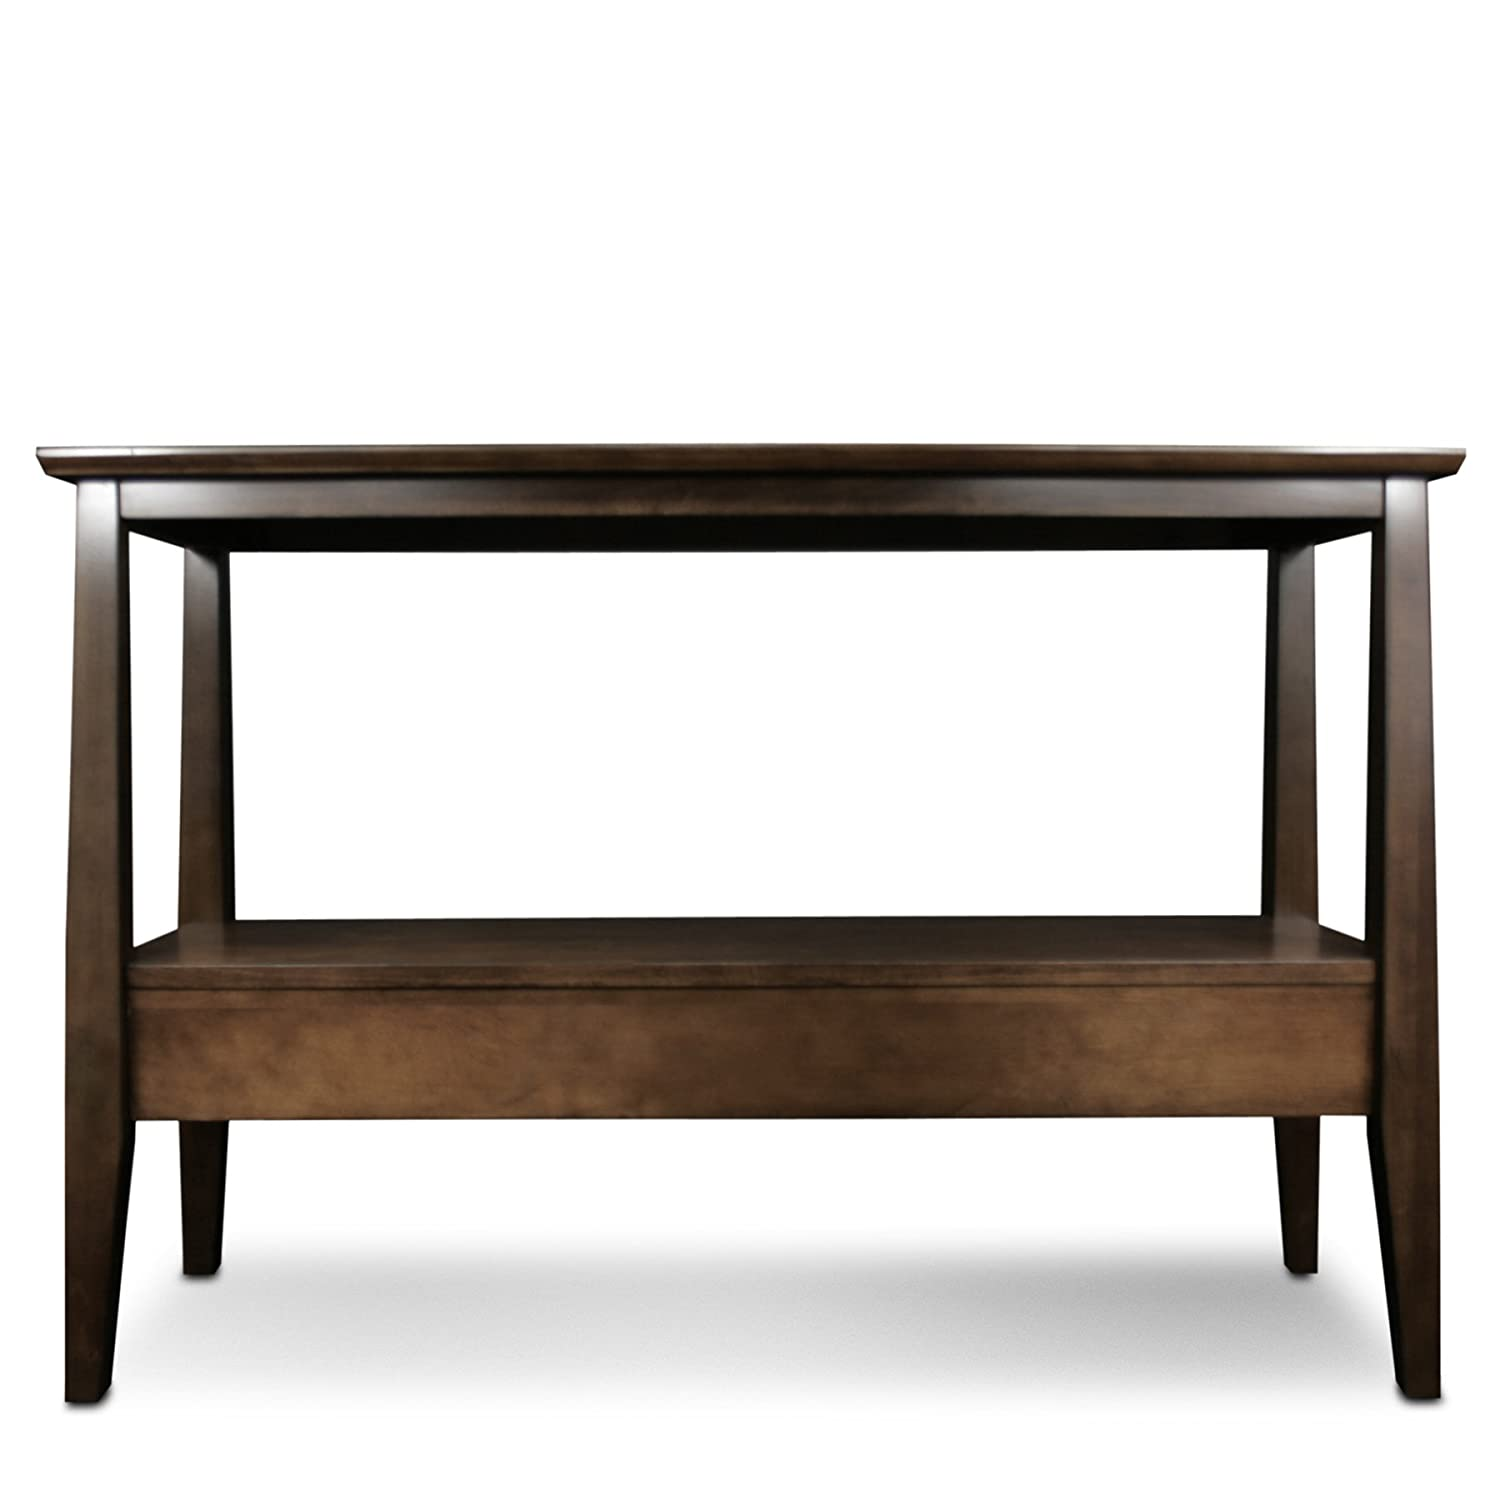 Merveilleux Amazon.com: Leick Delton Hall Console Table With Drawers: Kitchen U0026 Dining